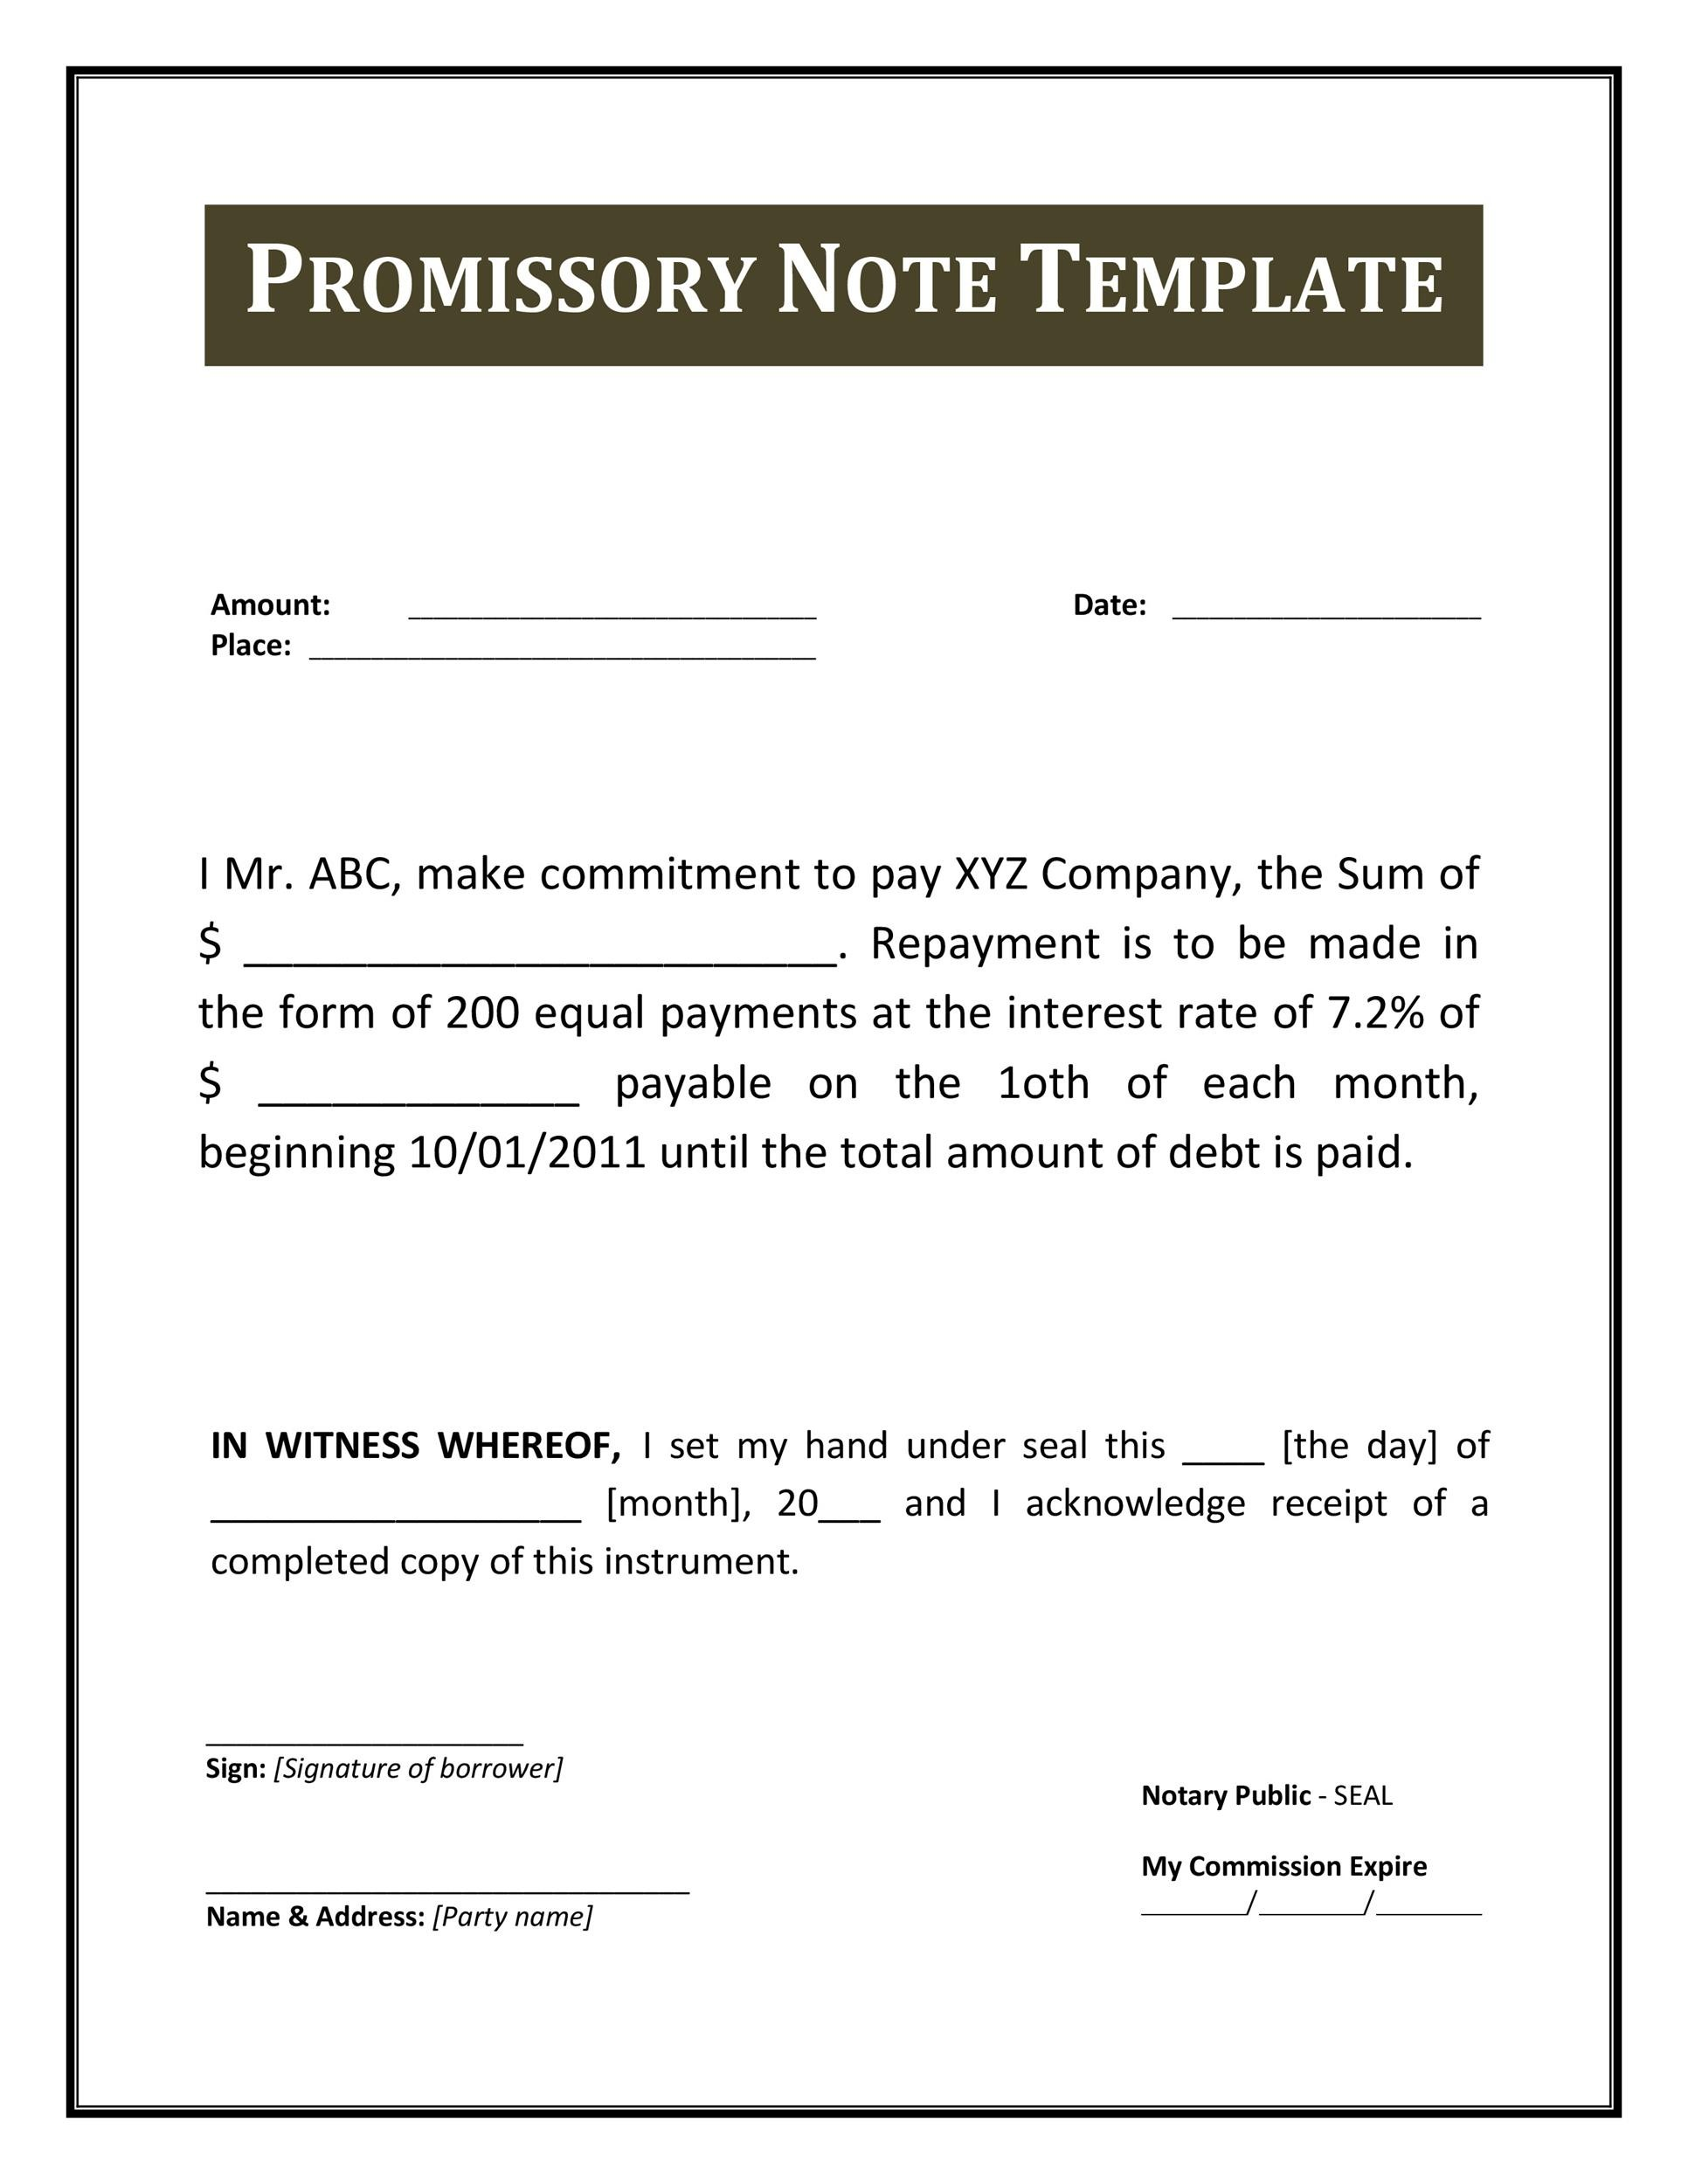 Awesome Printable Promissory Note Template 33 Regarding Examples Of Promissory Note